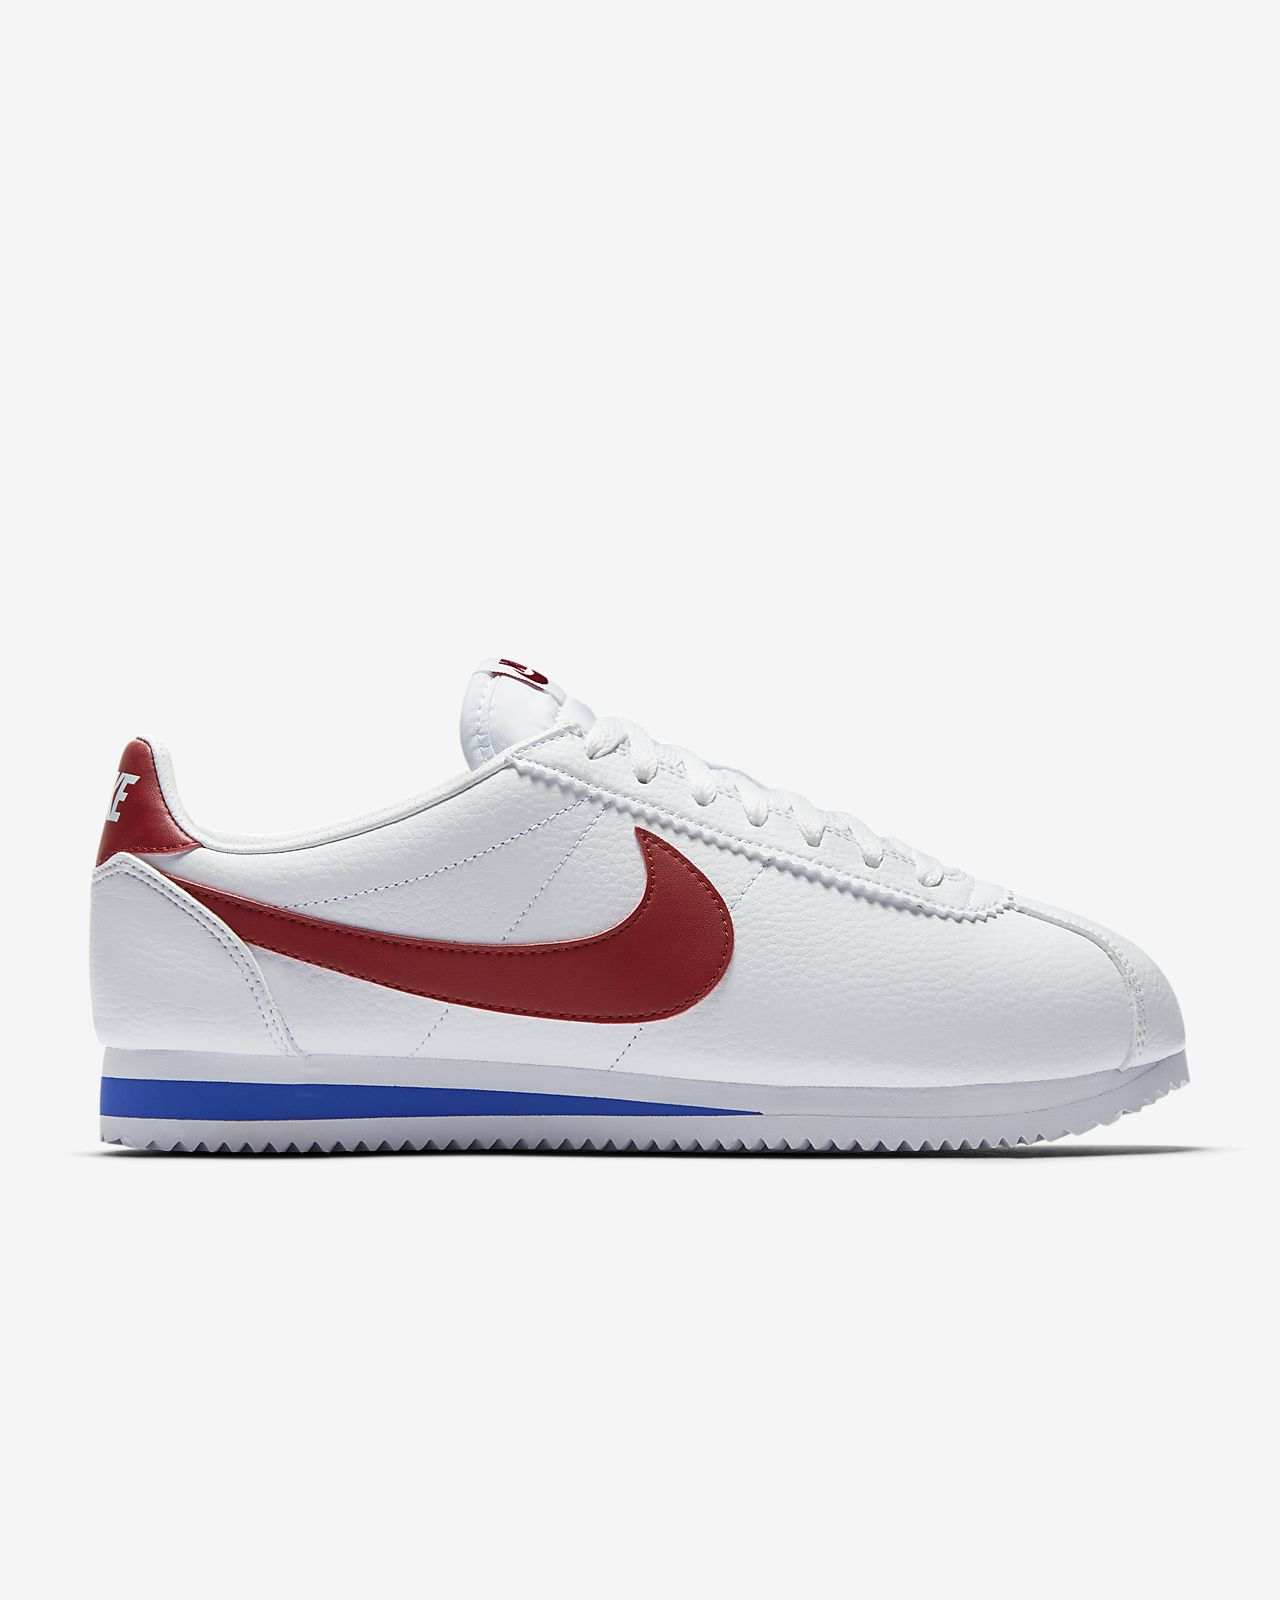 detailed look d59b8 57c6e ... Nike Classic Cortez Men s Shoe